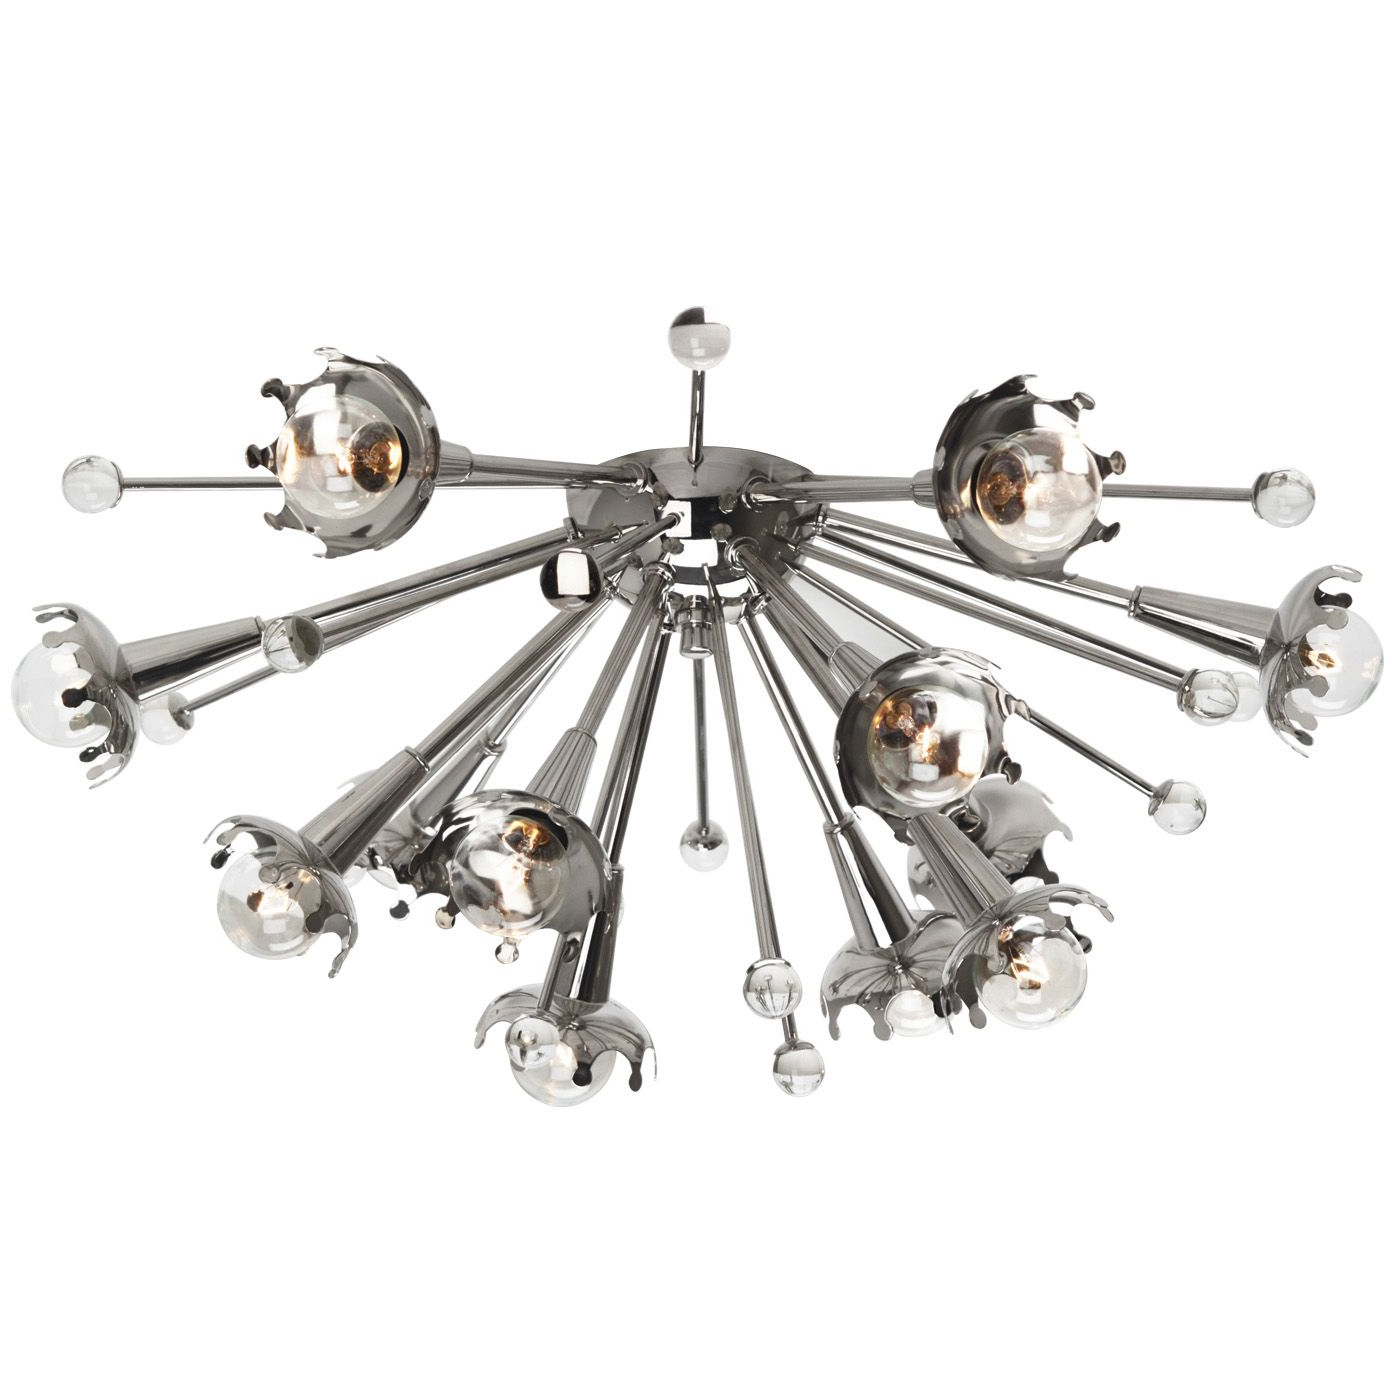 Bacchus 12 Light Sputnik Chandeliers Throughout Most Recently Released Pin On Lighting (View 17 of 20)